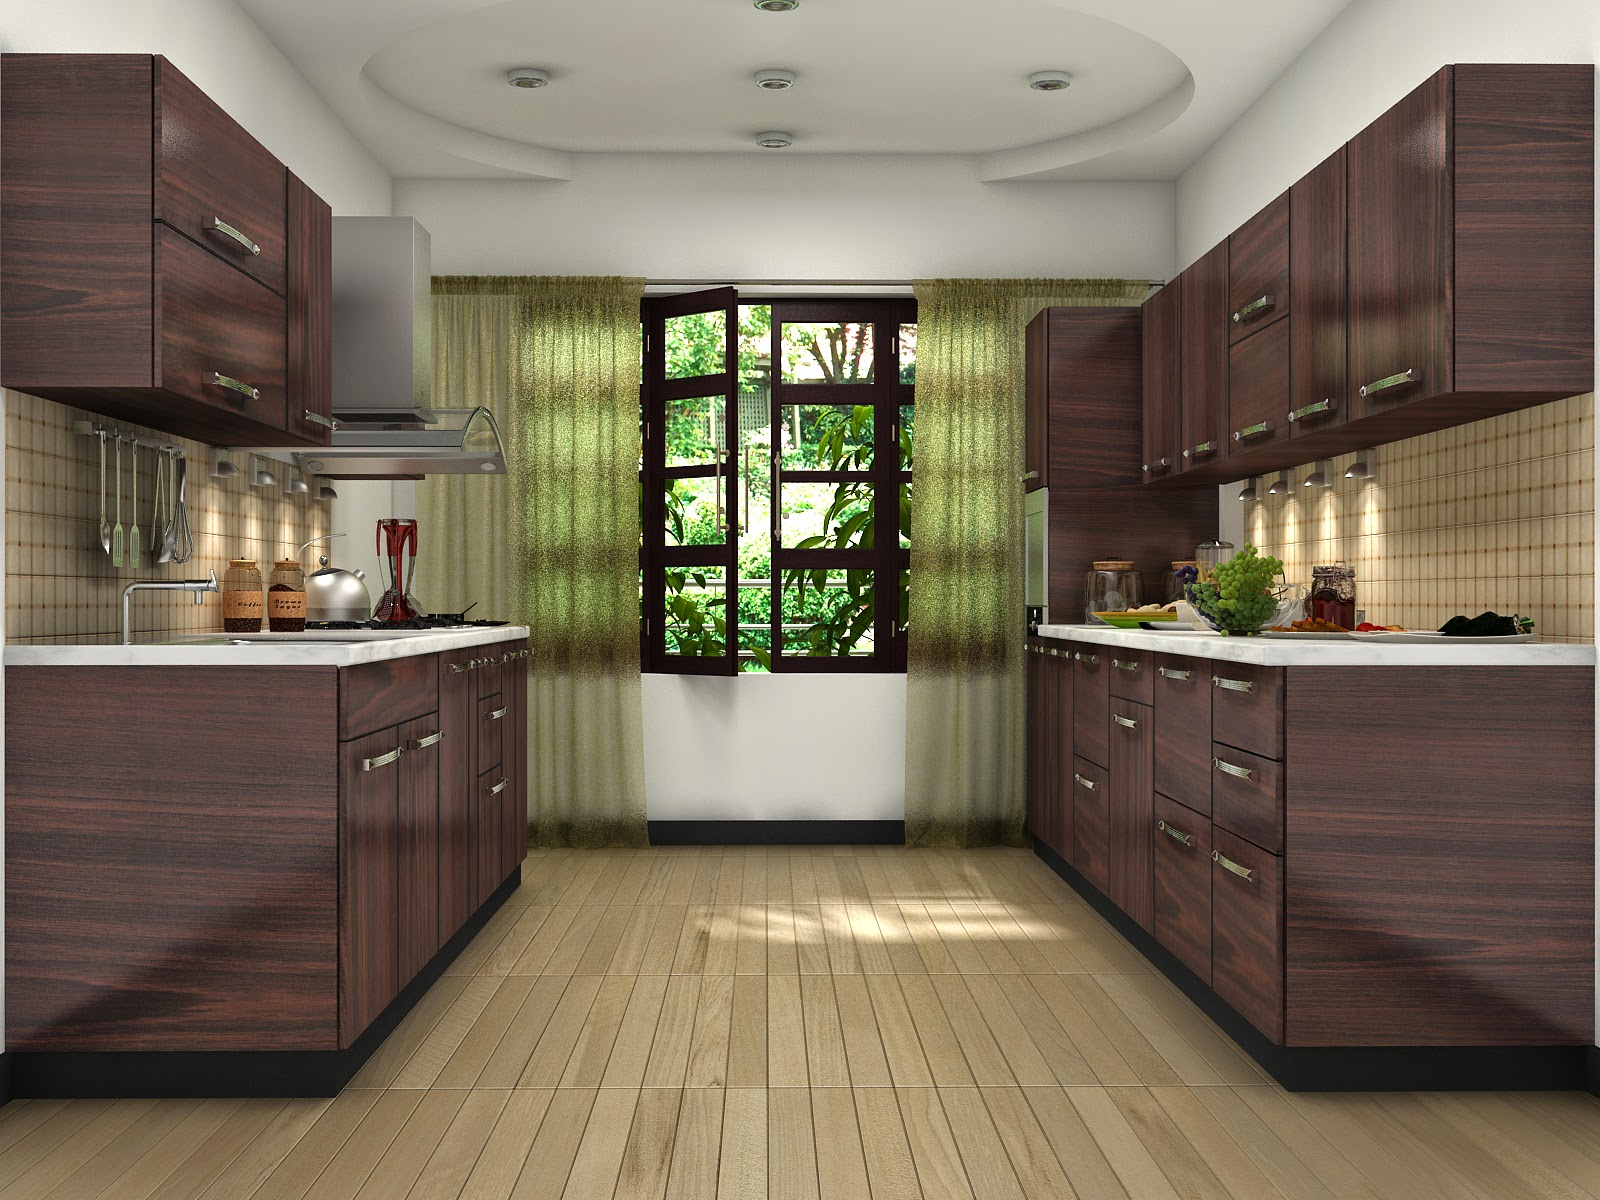 http://www.customfurnish.com/kitchen